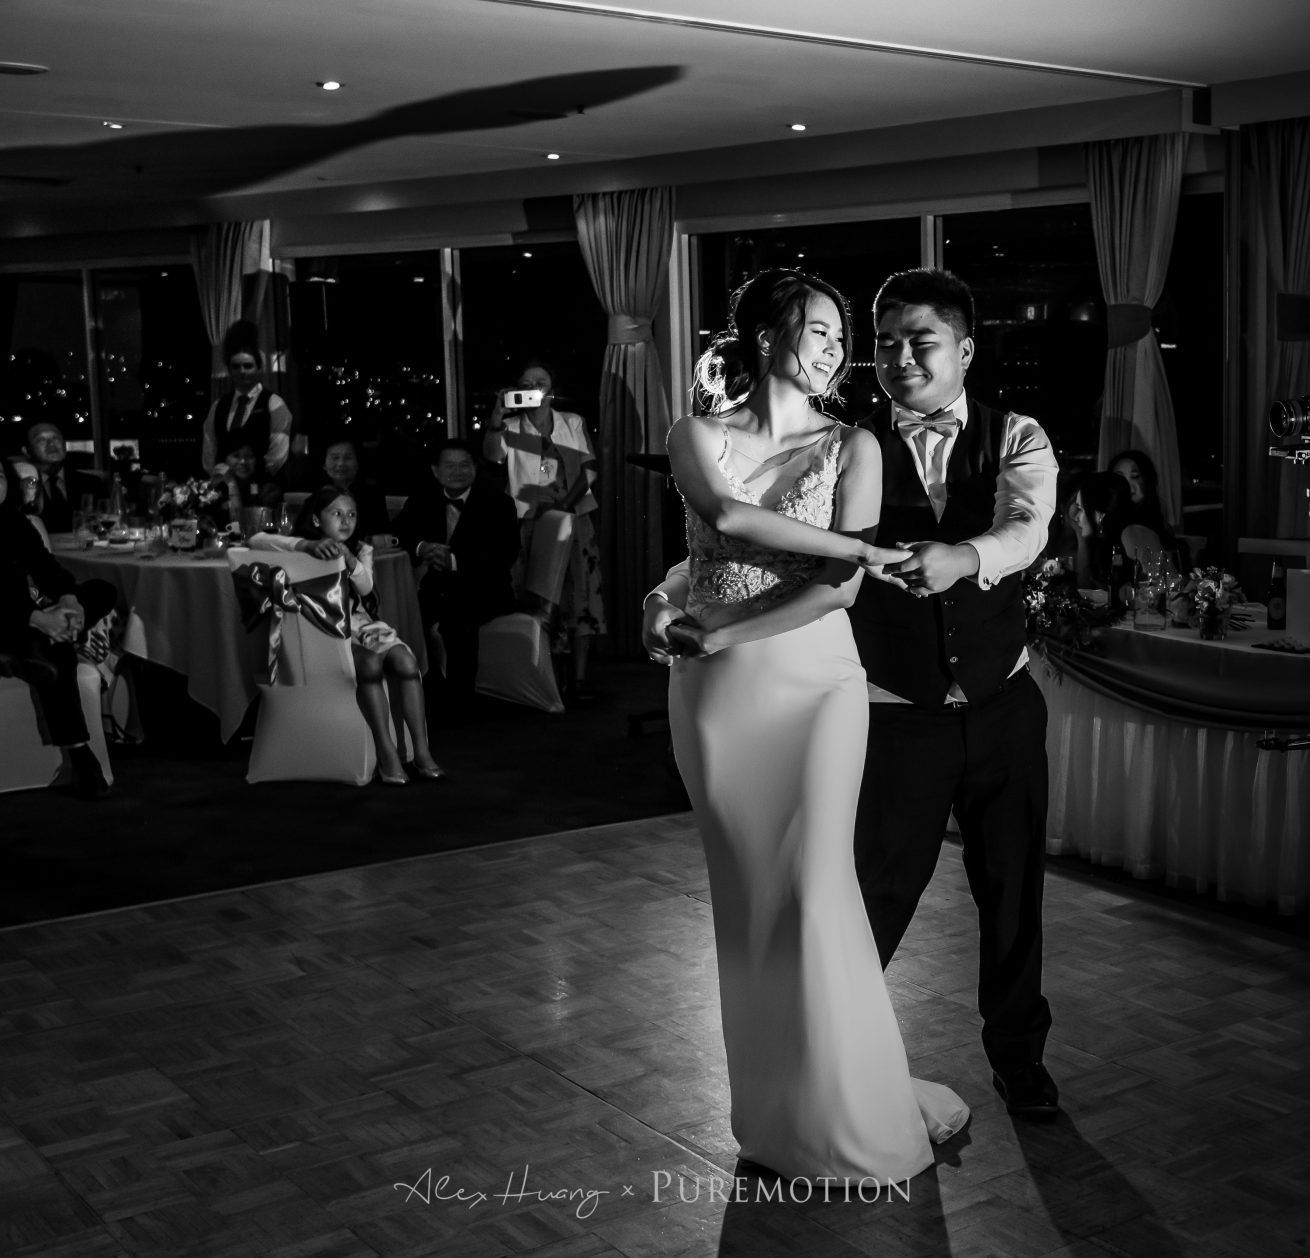 181103 Puremotion Wedding Photography Alex Huang StephBen-0116